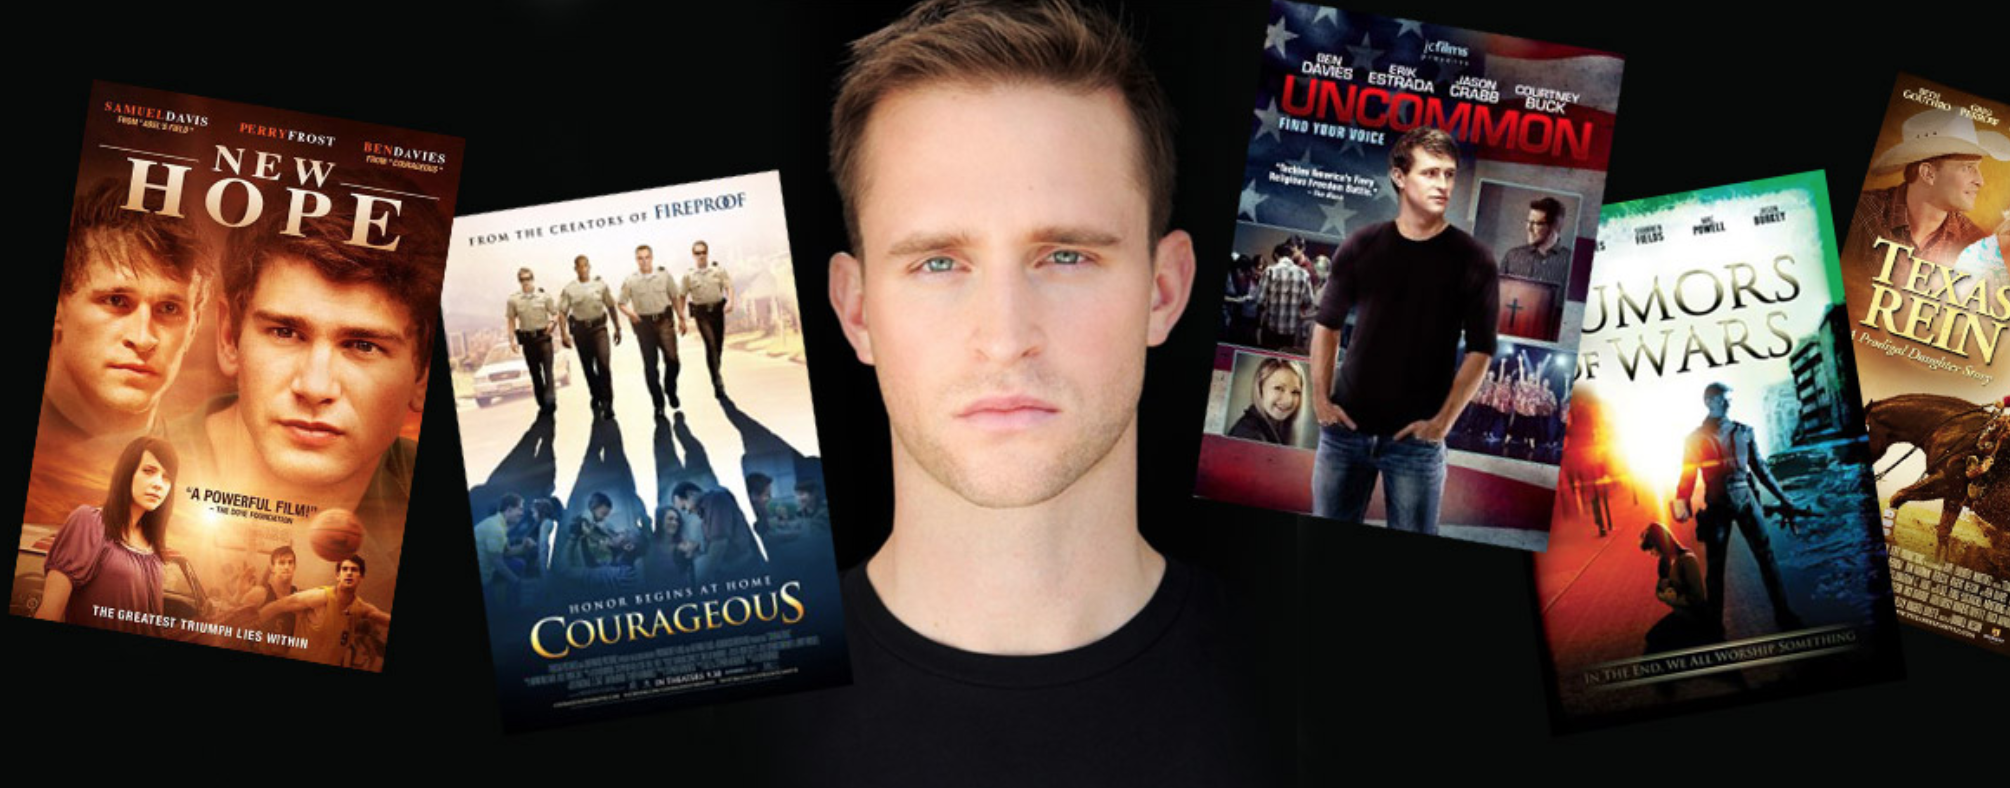 Ben Davies was a college track & field star and is now a leading faith-based film star.